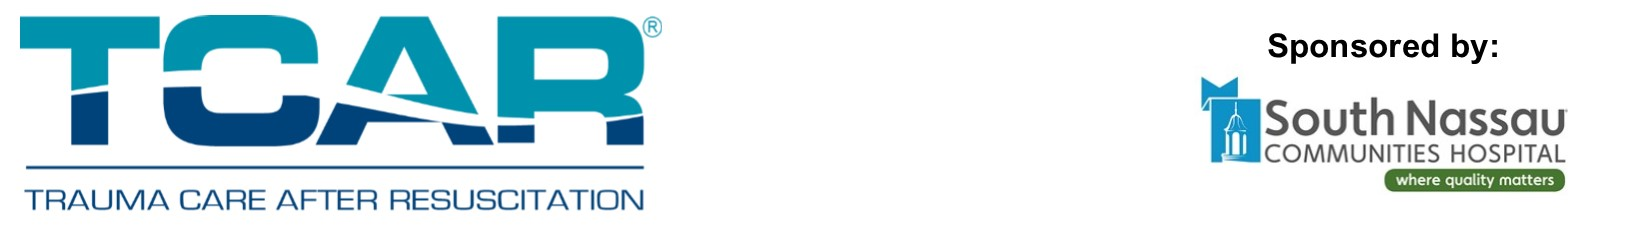 Trauma Care After Resuscitation